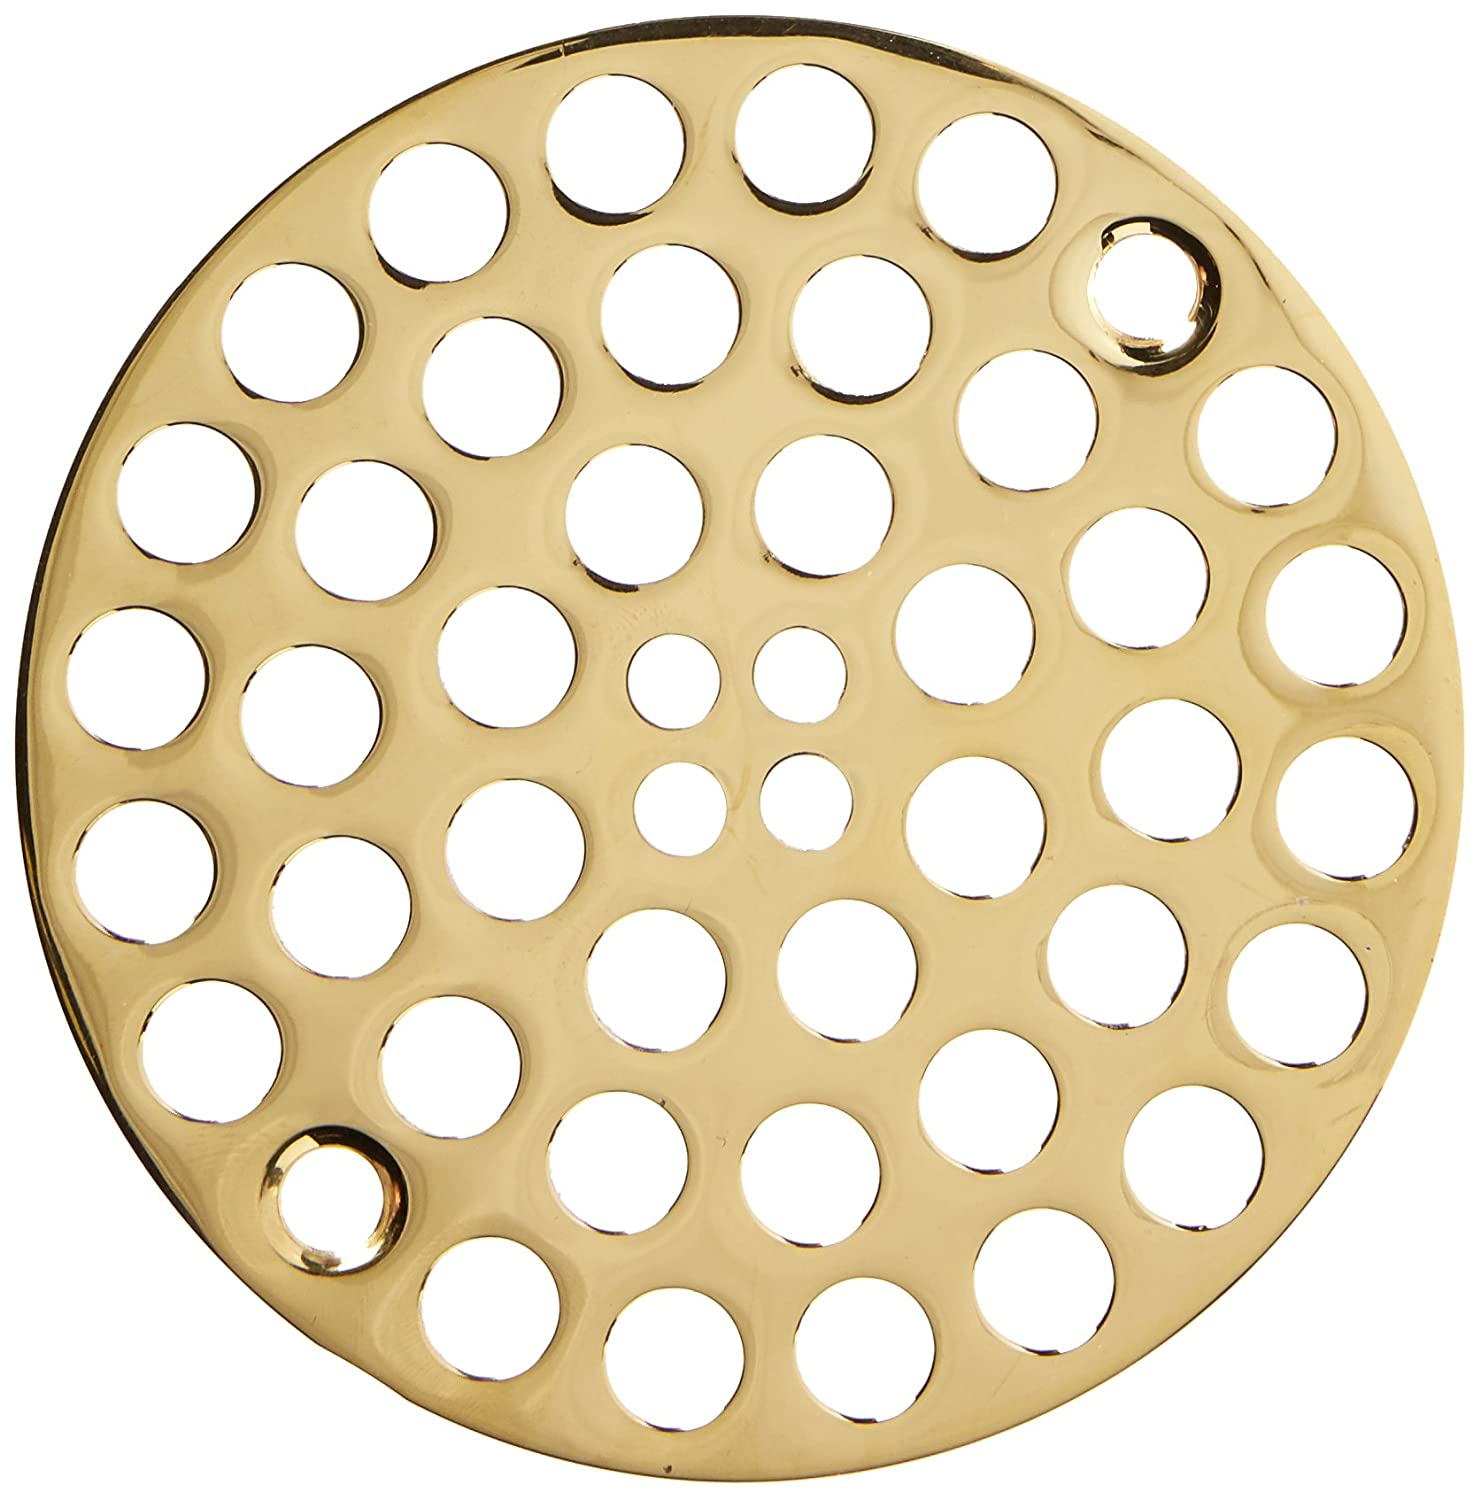 Brasstech 238/26 4-Inch Solid Brass Shower Strainer, Polished Chrome - Shower Drain Cover - Amazon.com